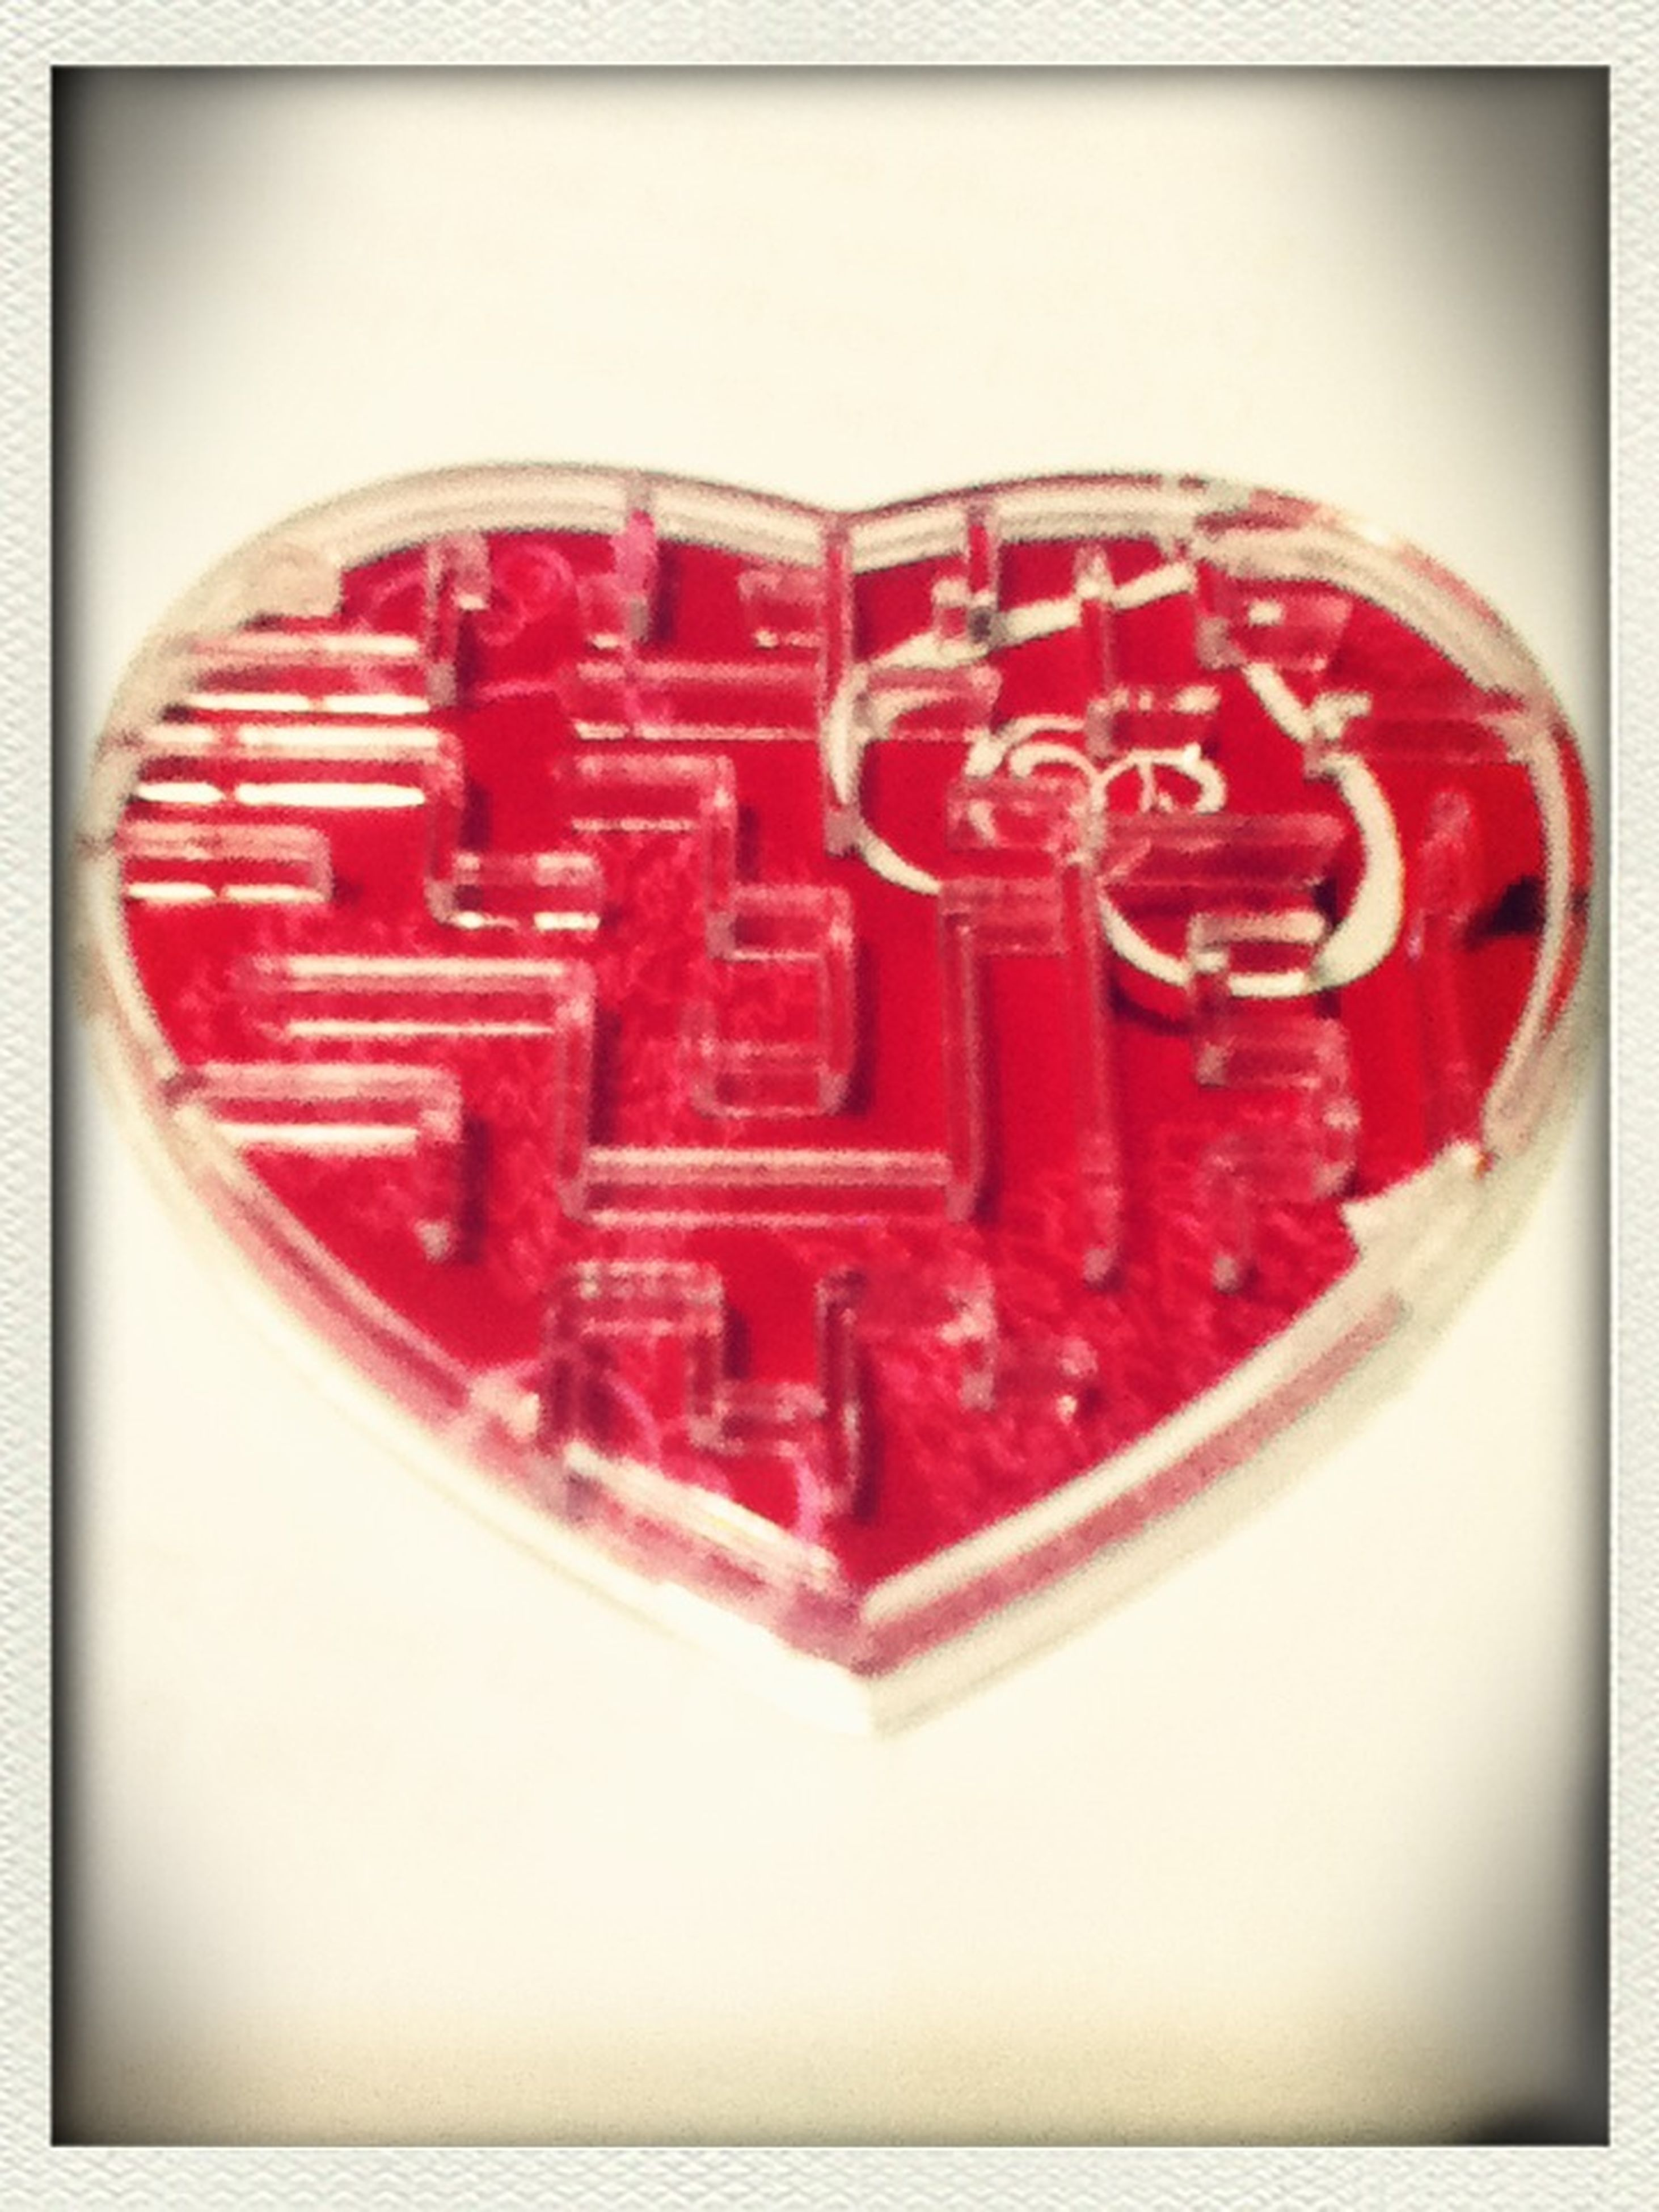 transfer print, red, auto post production filter, indoors, close-up, circle, still life, single object, high angle view, heart shape, no people, studio shot, directly above, geometric shape, love, communication, shape, metal, food and drink, vignette